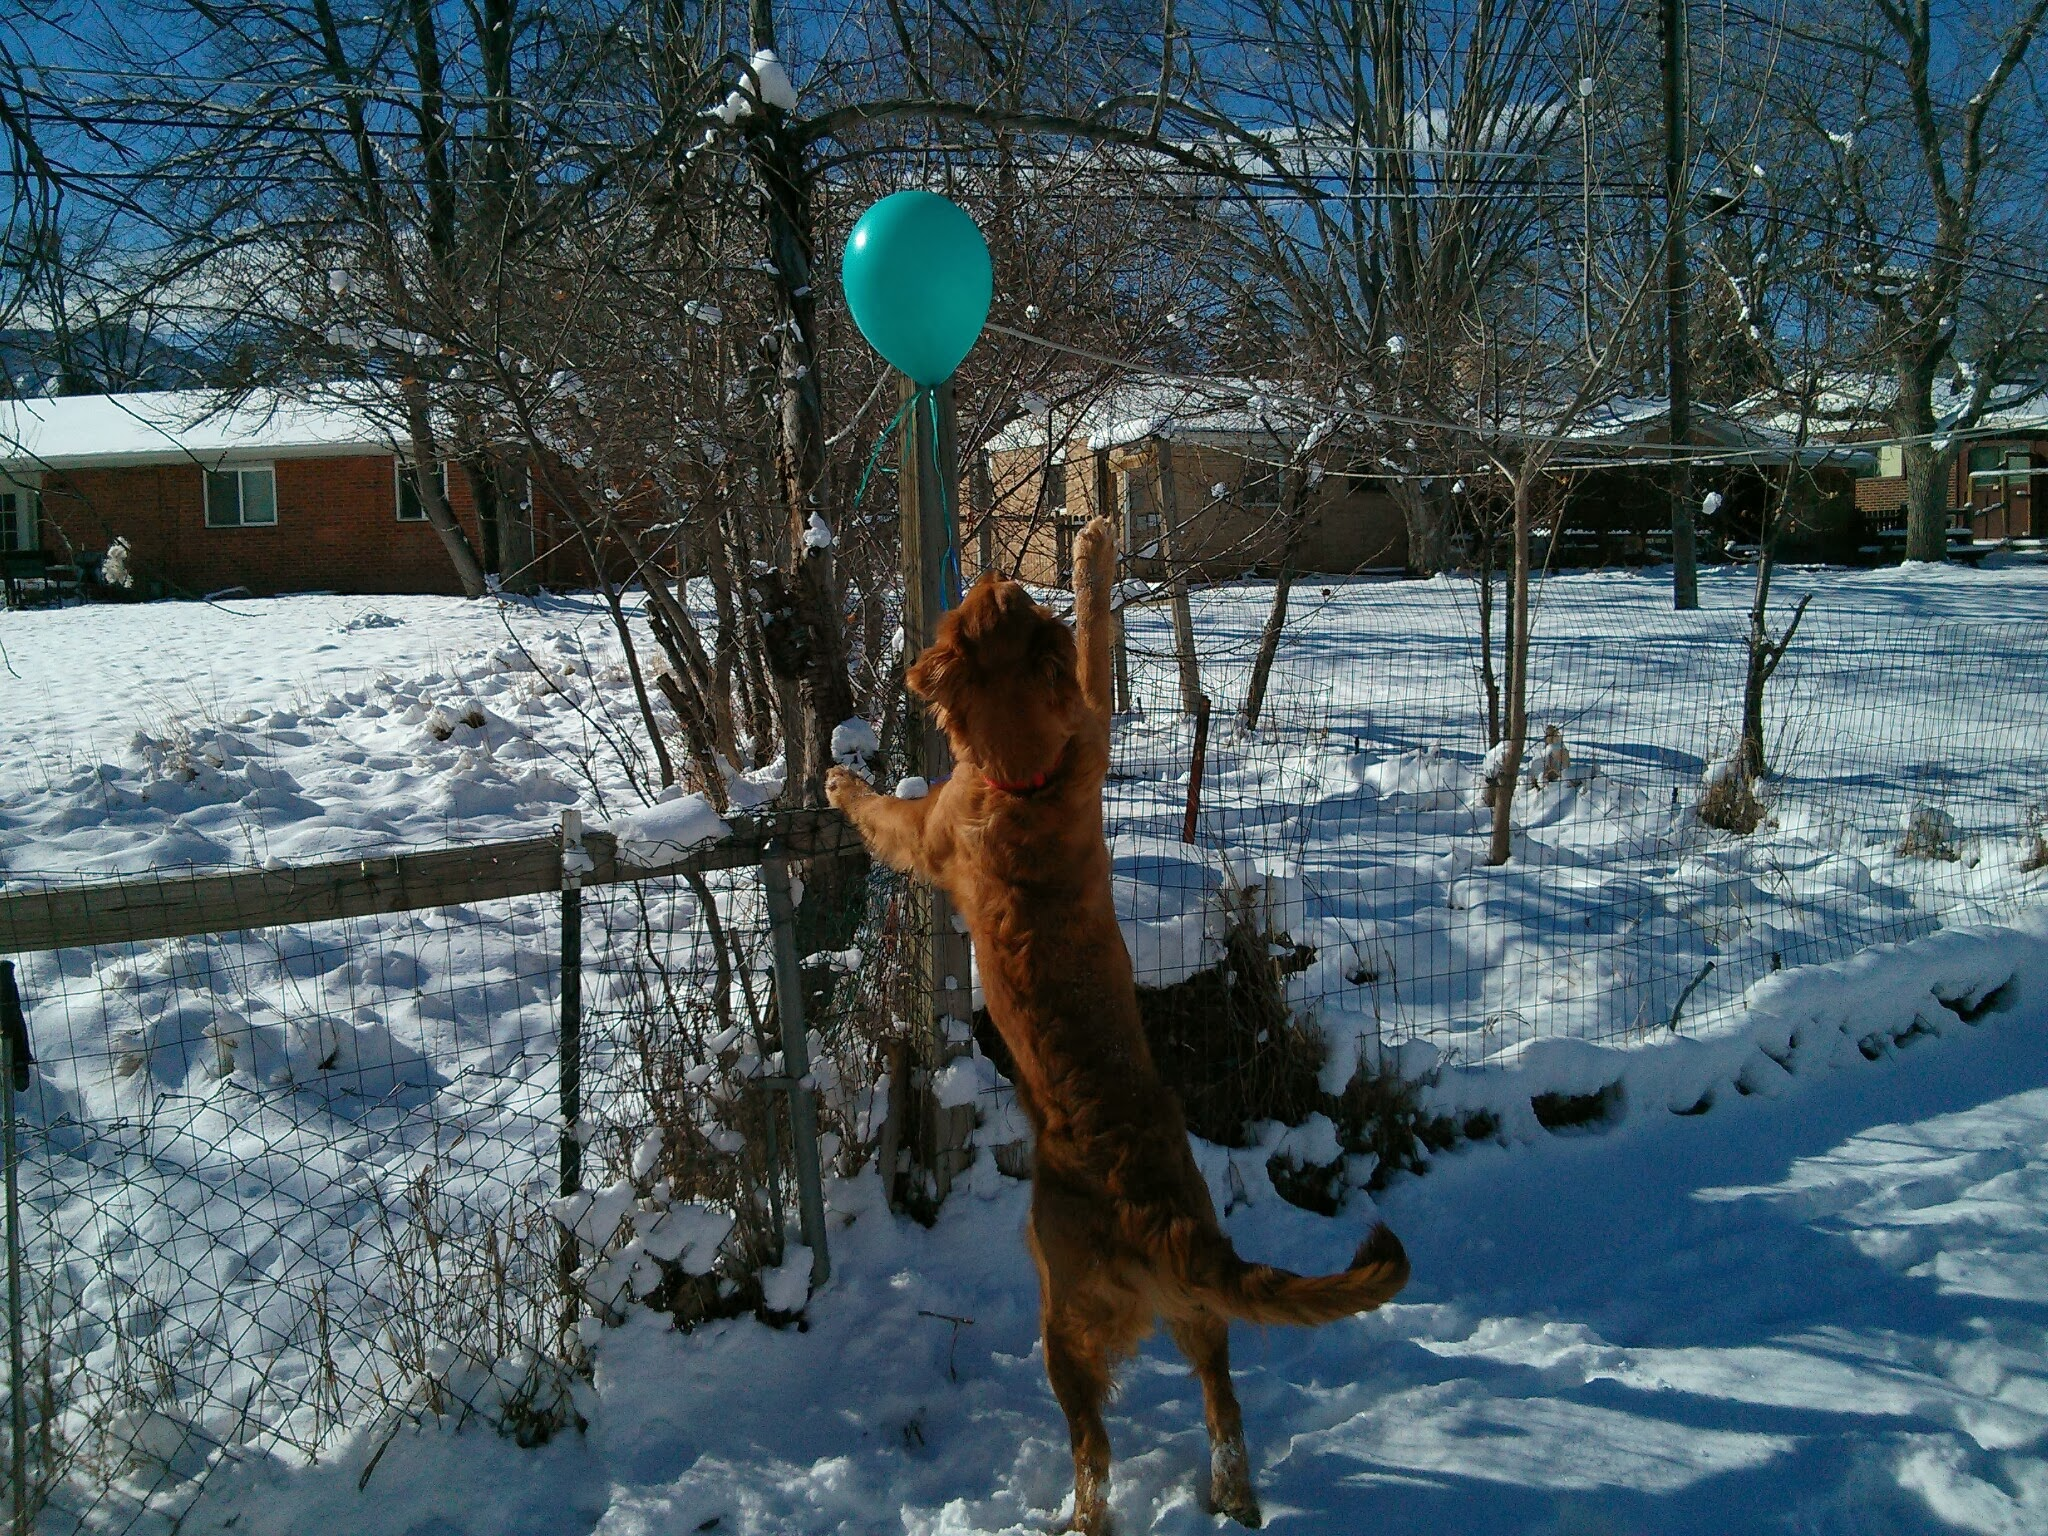 the balloon attempts to cross the fence and Bender hops up to chase it